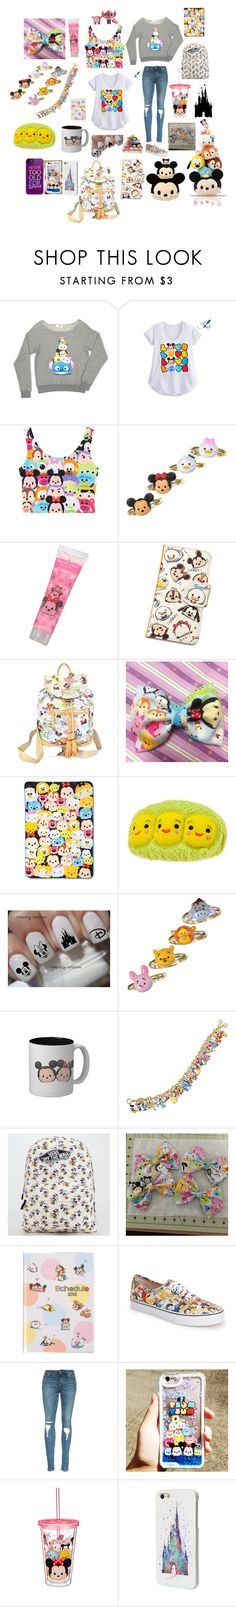 """Tsum Tsum Look✨"" by macaulere ❤ liked on Polyvore featuring Disney, Dooney & Bourke, The Bradford Exchange, Vans, women's clothing, women, female, woman, misses and juniors"